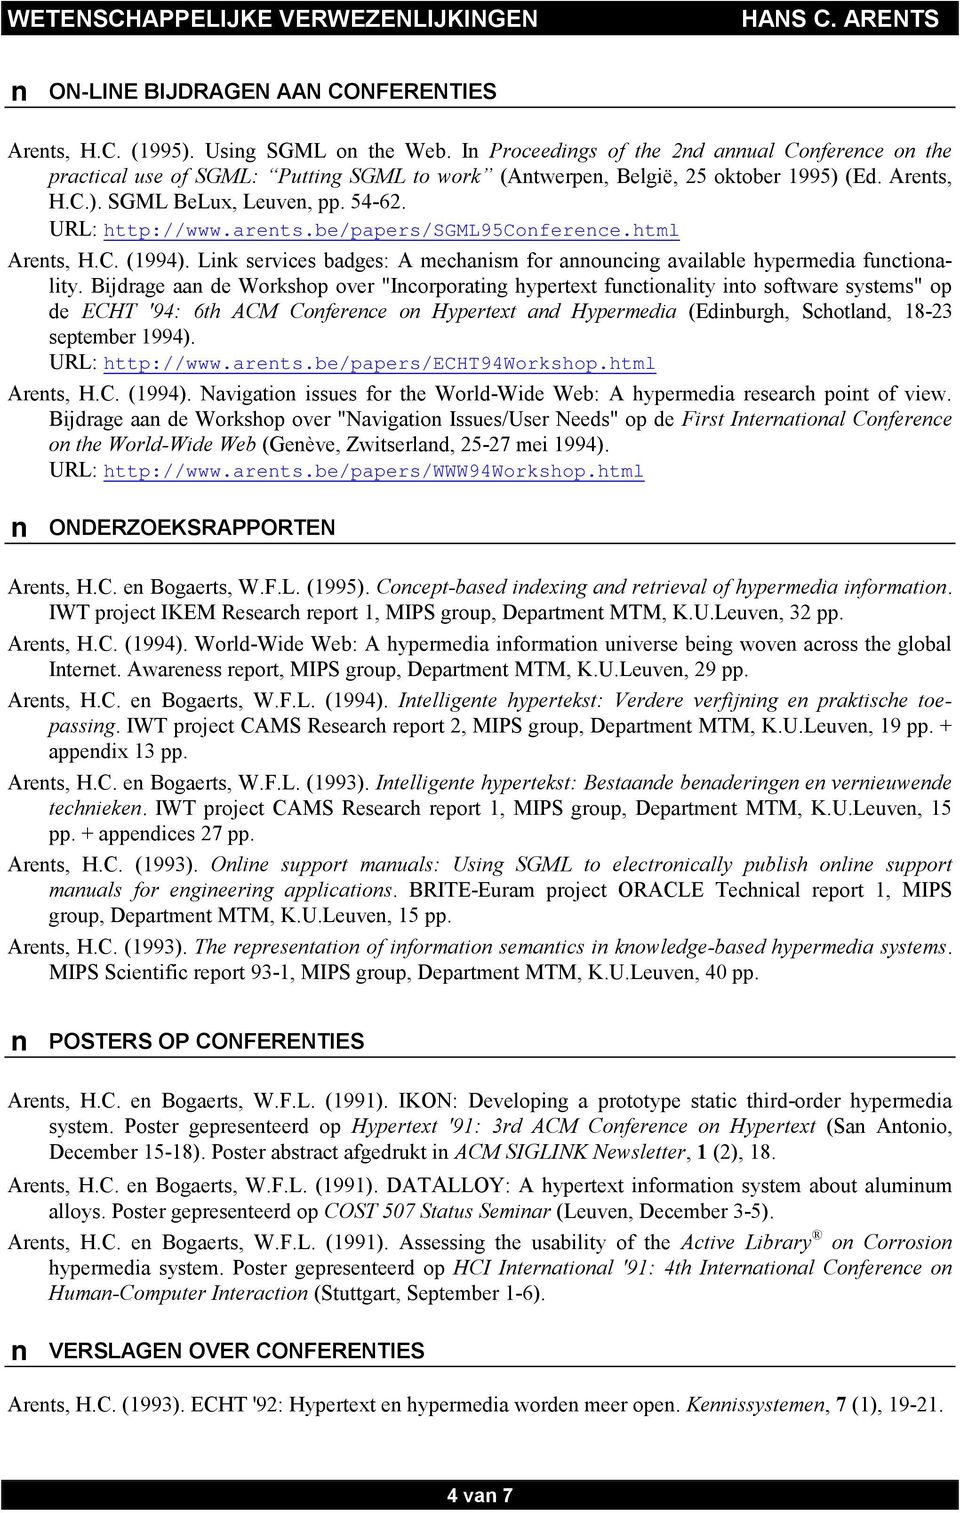 arents.be/papers/sgml95conference.html Arents, H.C. (1994). Link services badges: A mechanism for announcing available hypermedia functionality.